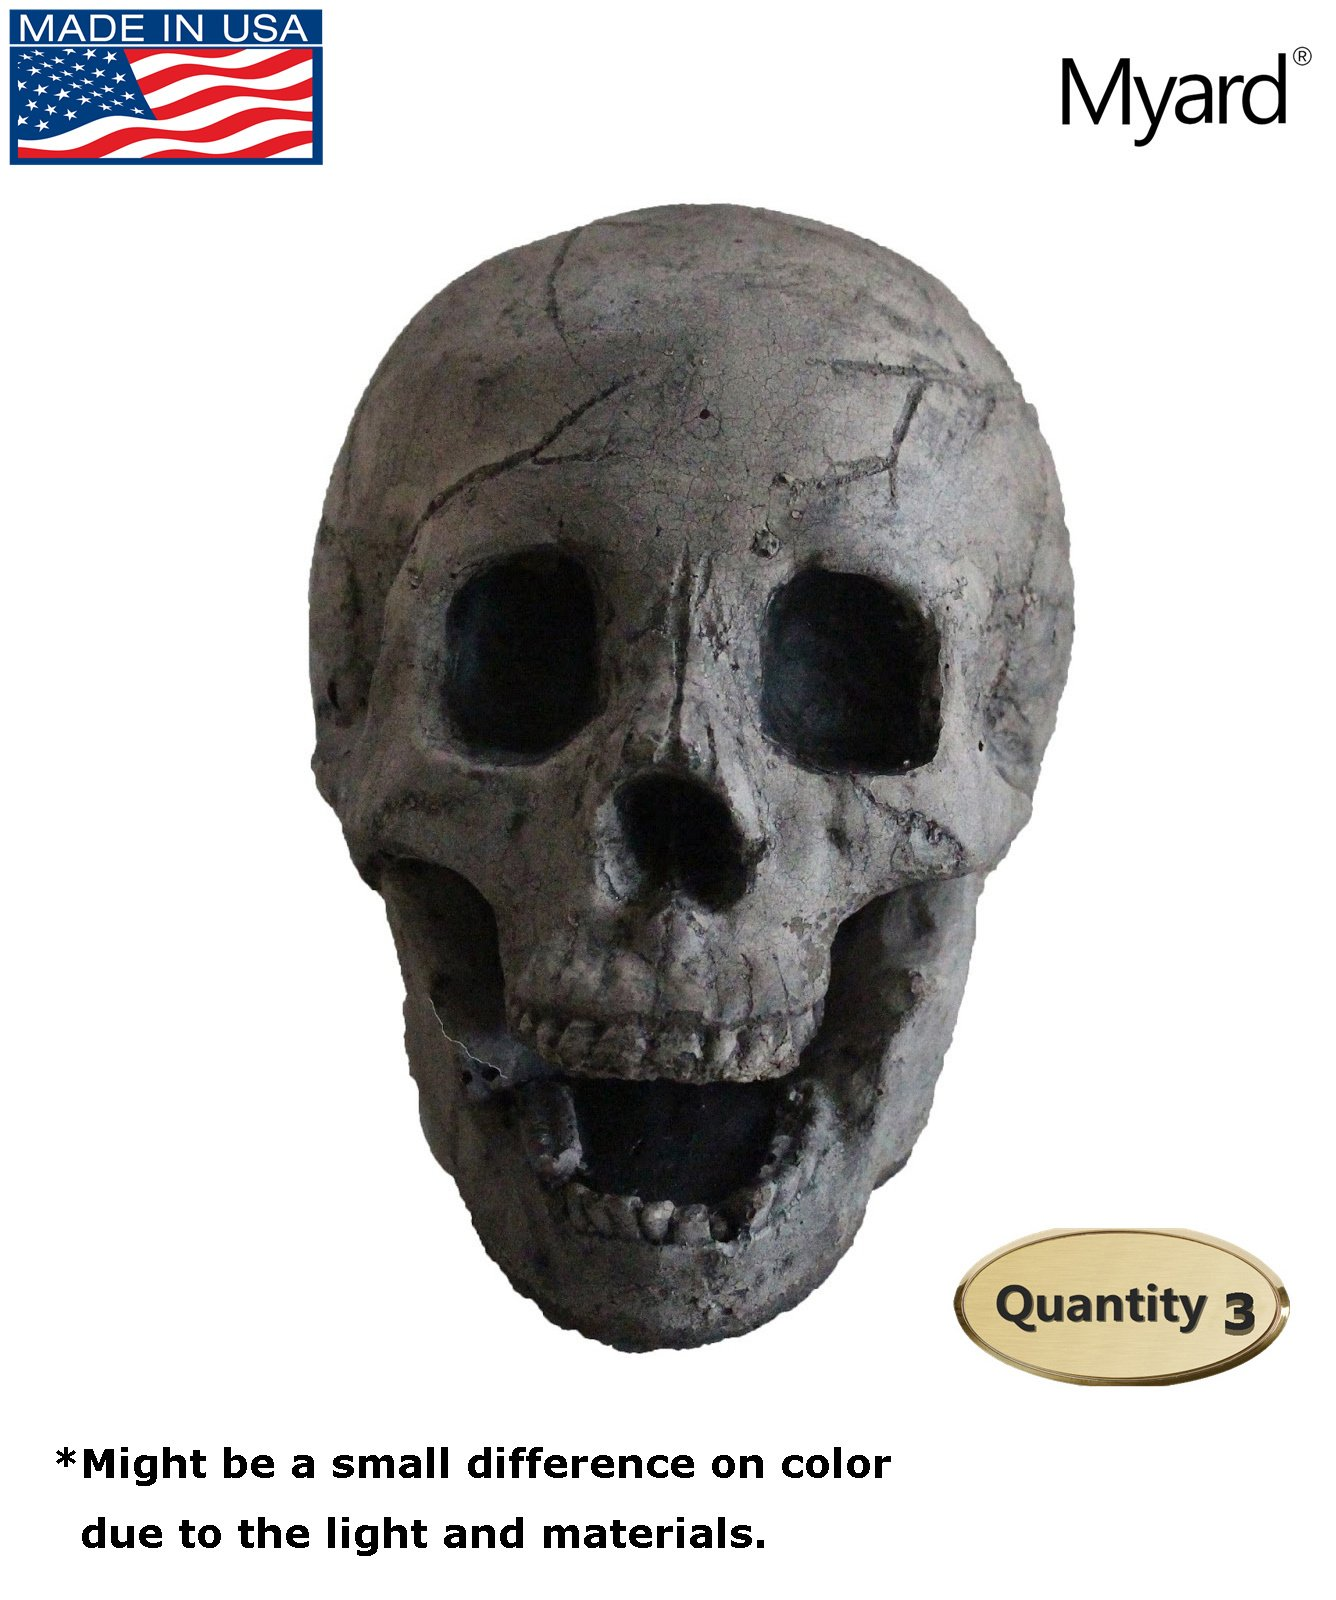 Myard DELUXE Log - Imitated Human Skull Fire Gas Log for Natural Gas / Liquid Propane / Wood Fire Fireplace & Fire Pit Halloween (Qty 3, Aged Dark Grey Skull)